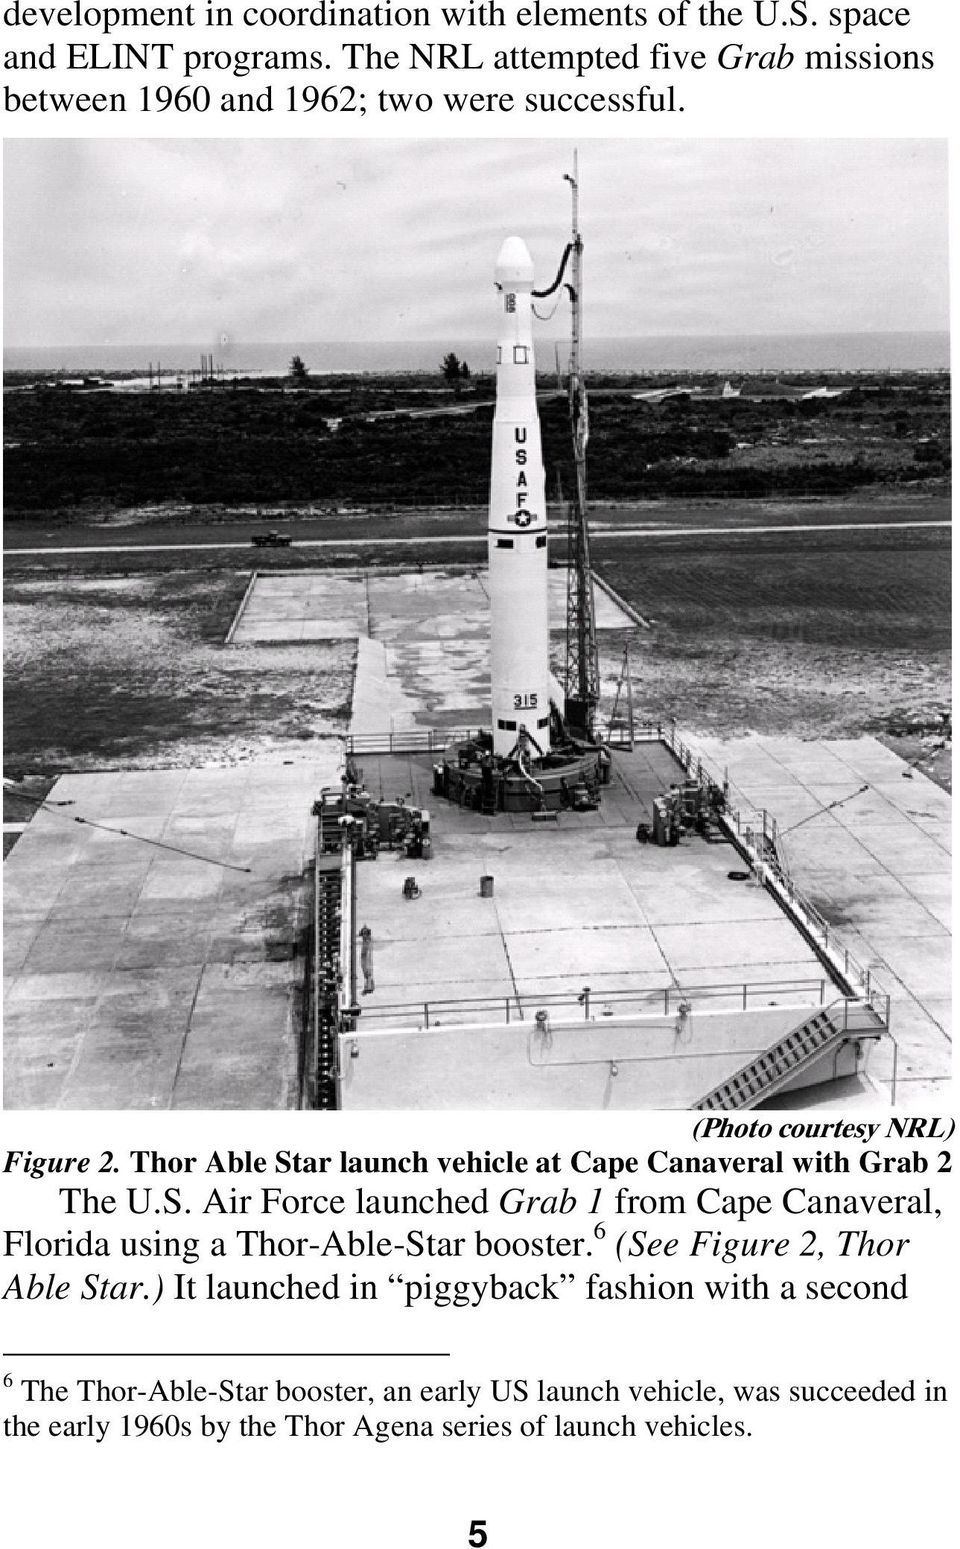 Thor Able Star launch vehicle at Cape Canaveral with Grab 2 The U.S. Air Force launched Grab 1 from Cape Canaveral, Florida using a Thor-Able-Star booster.